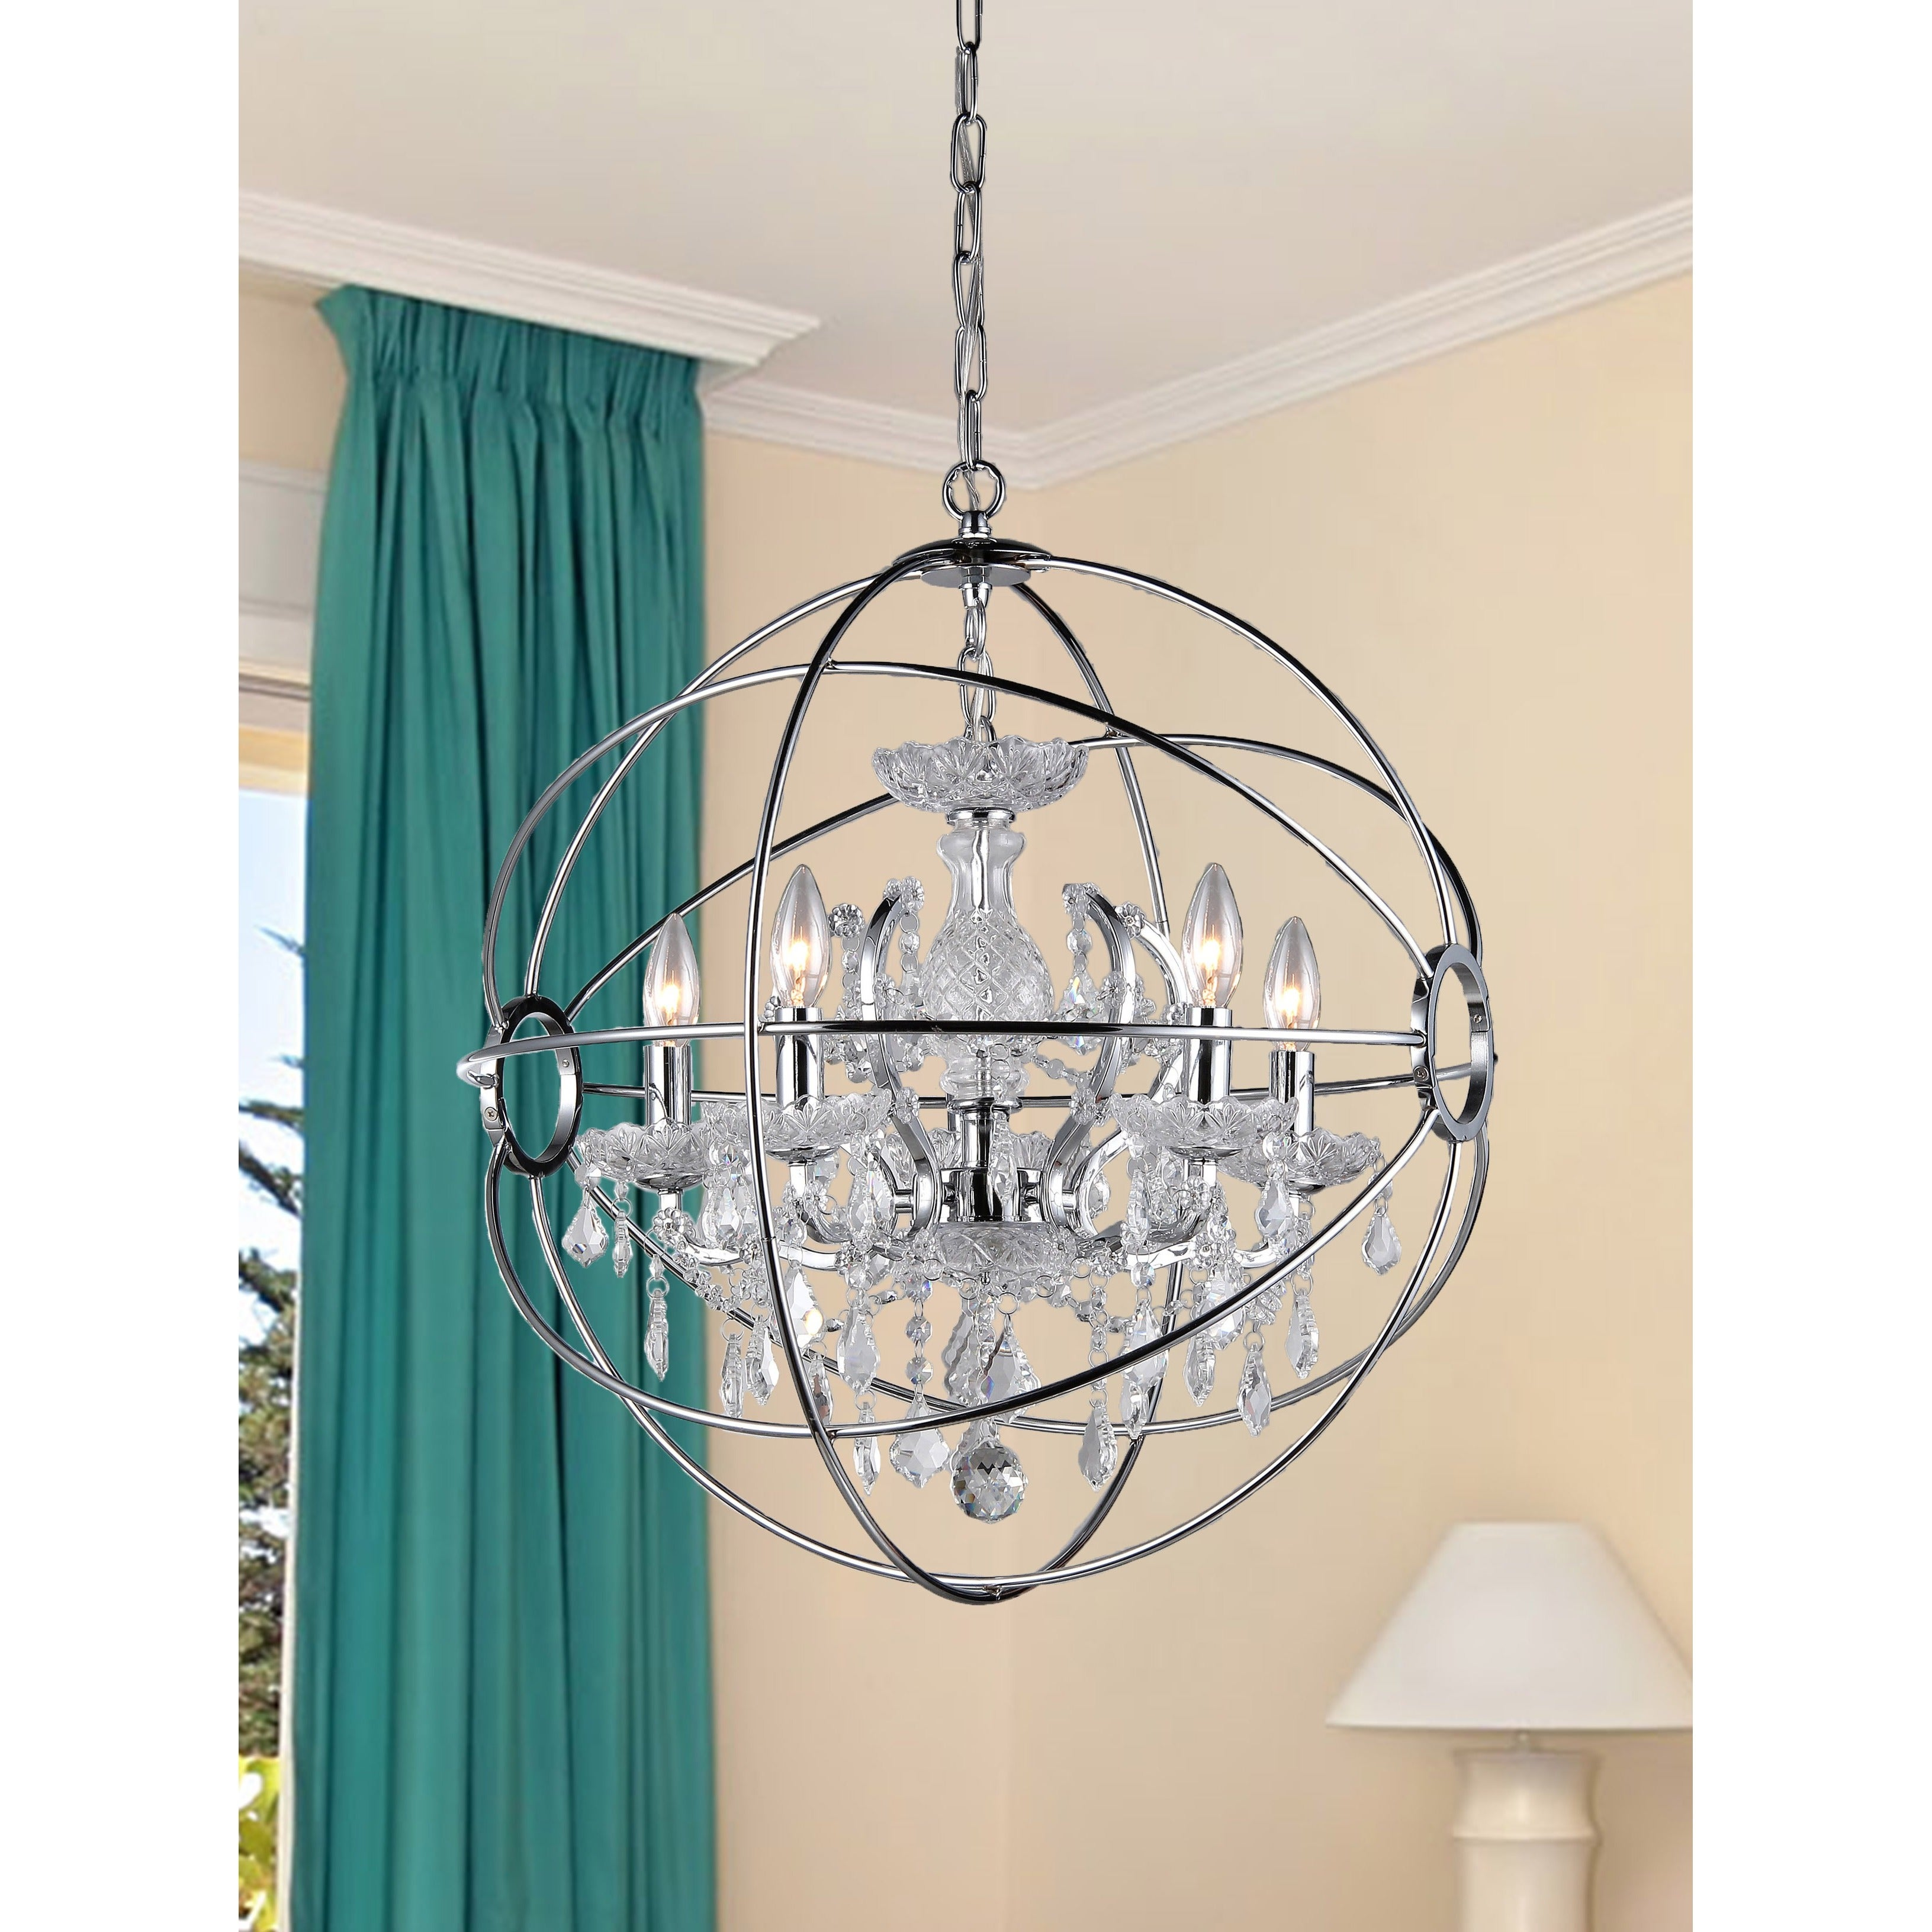 Saturn s Ring 16 inch Chandelier Free Shipping Today Overstock